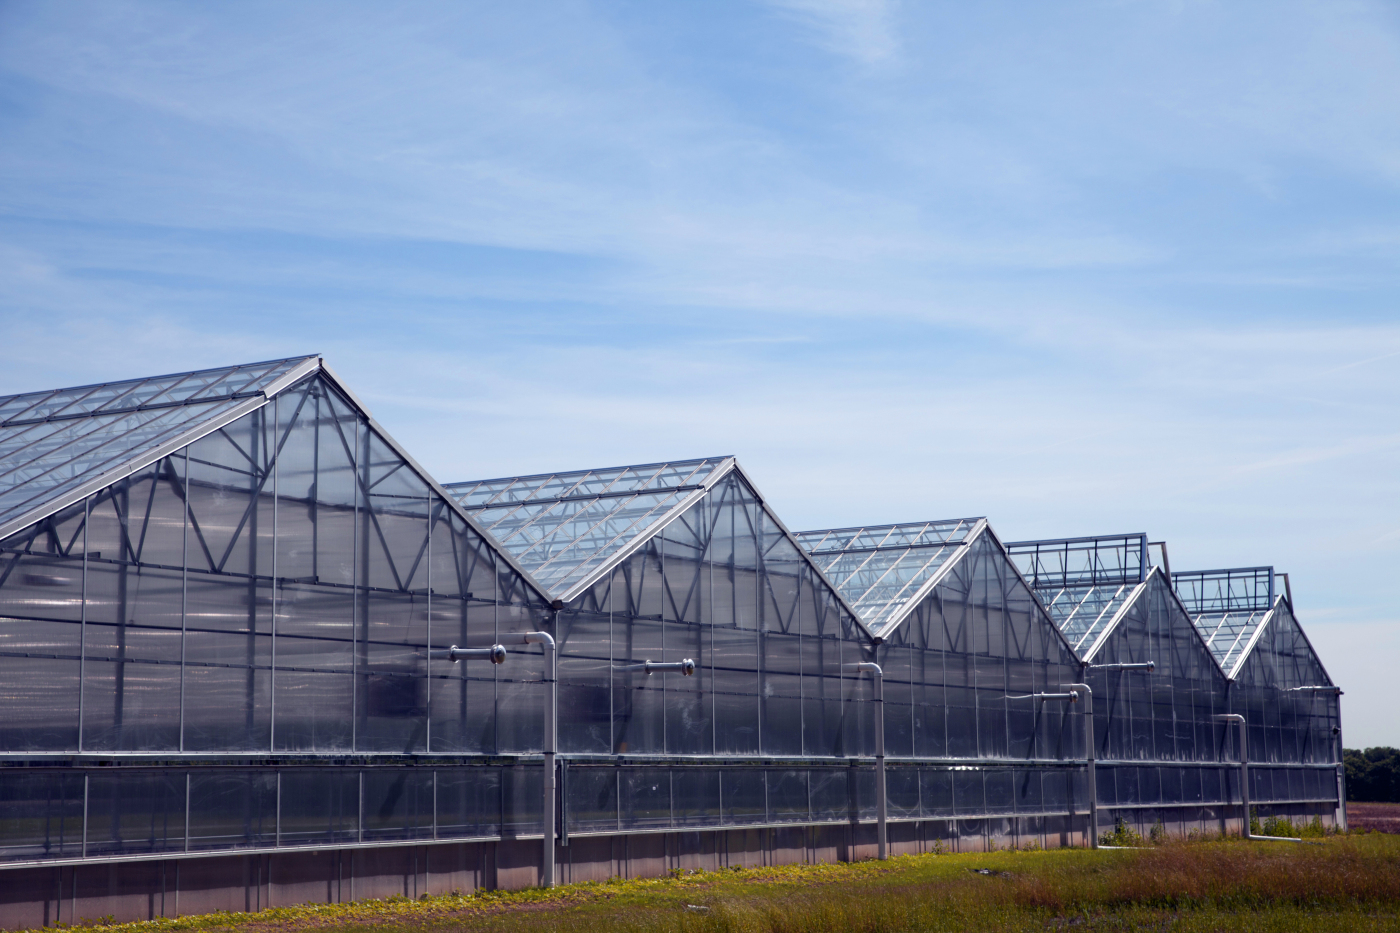 A BrightFarms greenhouse that grows tomatoes and salad greens.